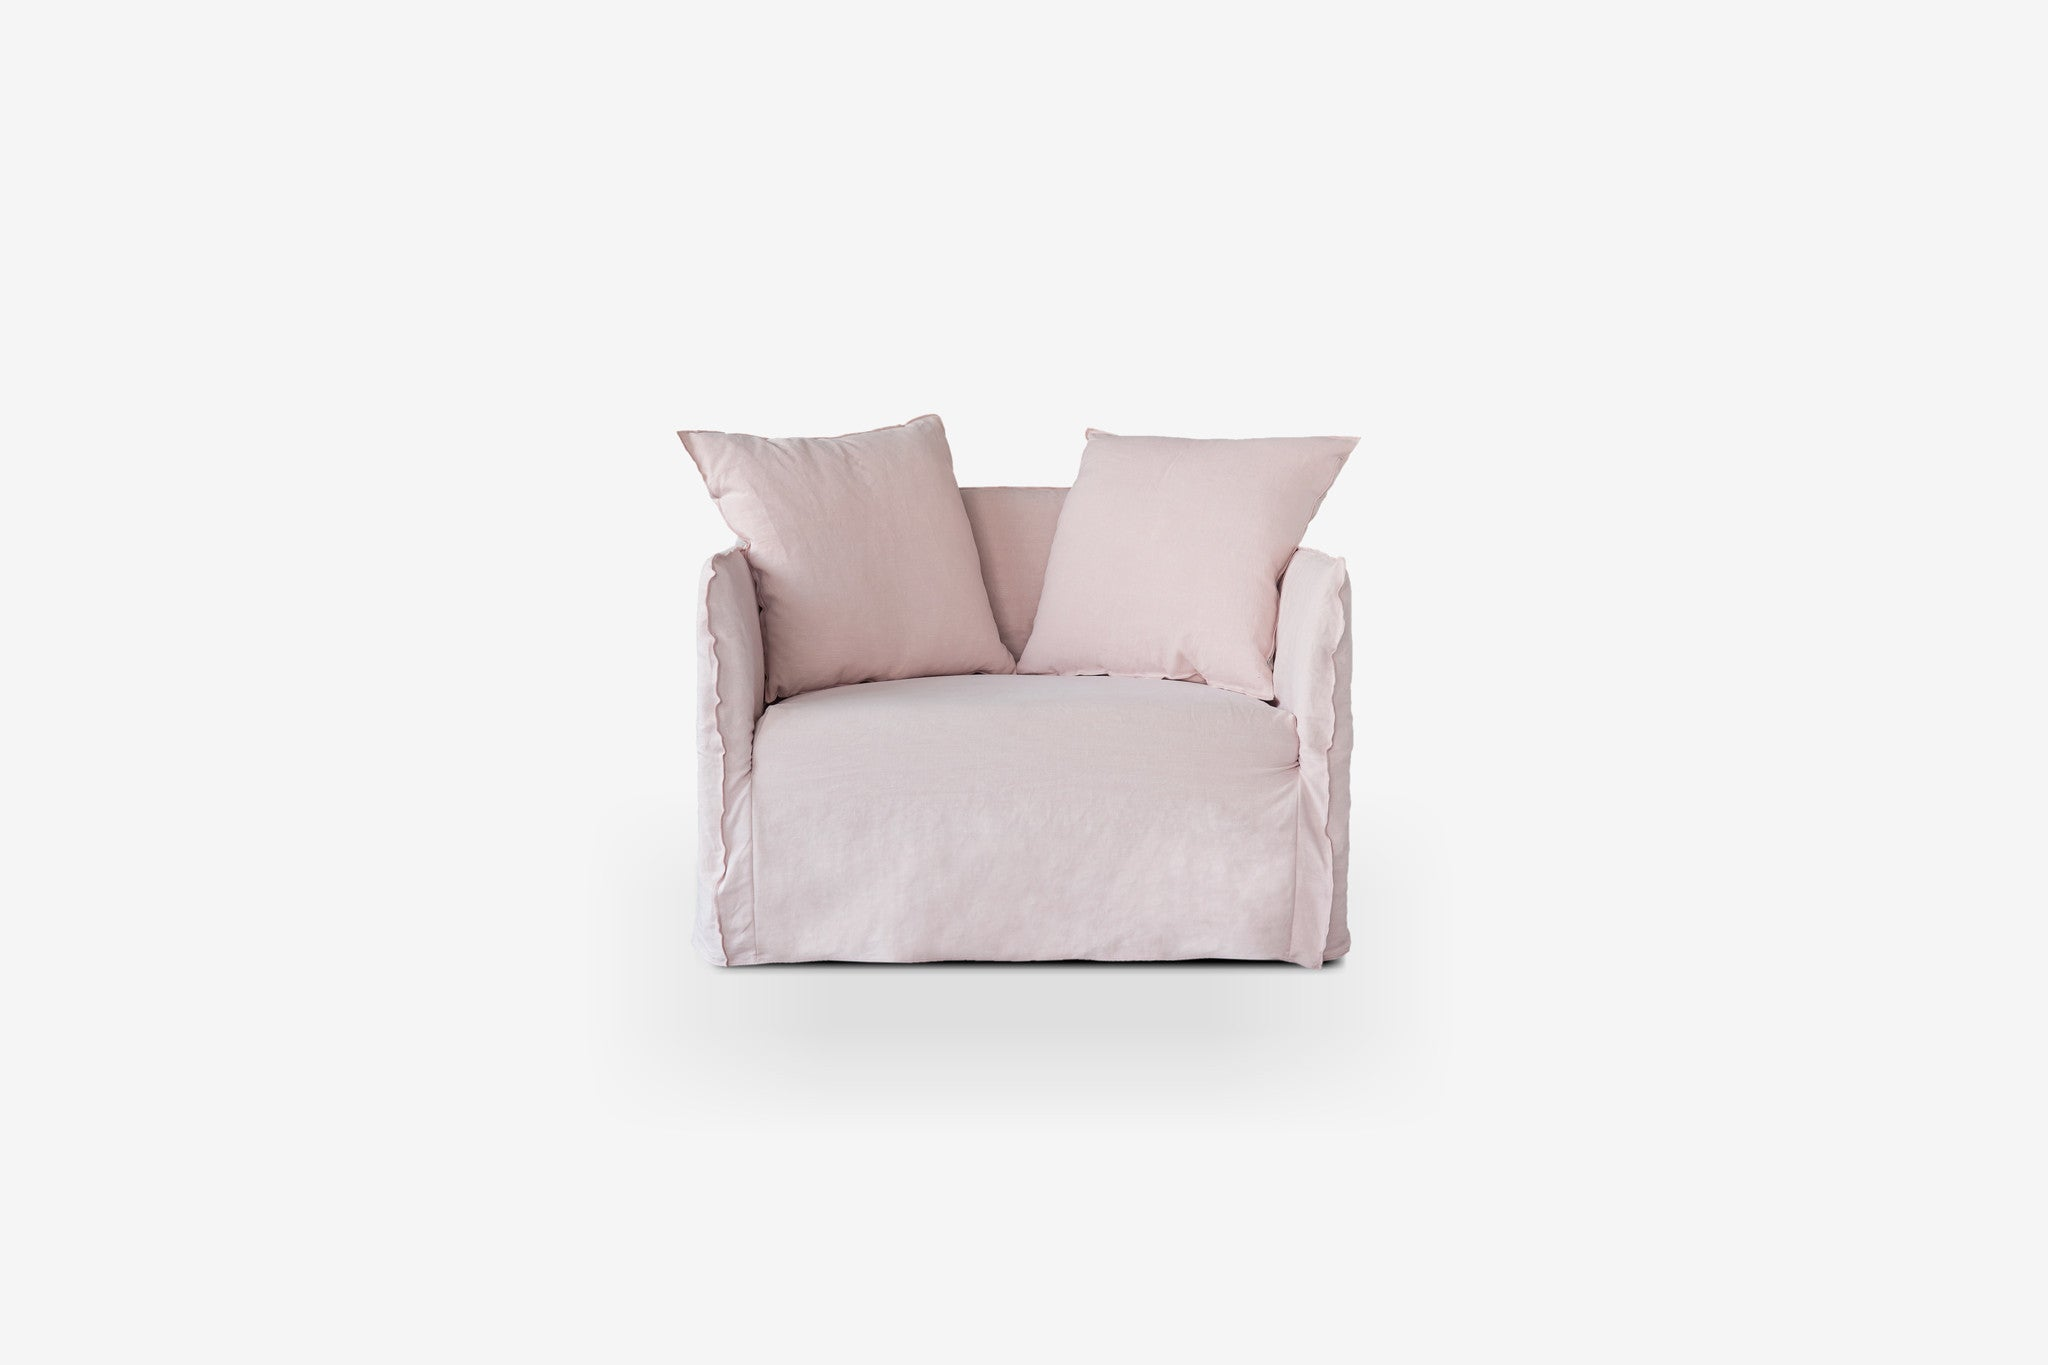 Buy The Joe Loveseat From Smithmade On The Northern